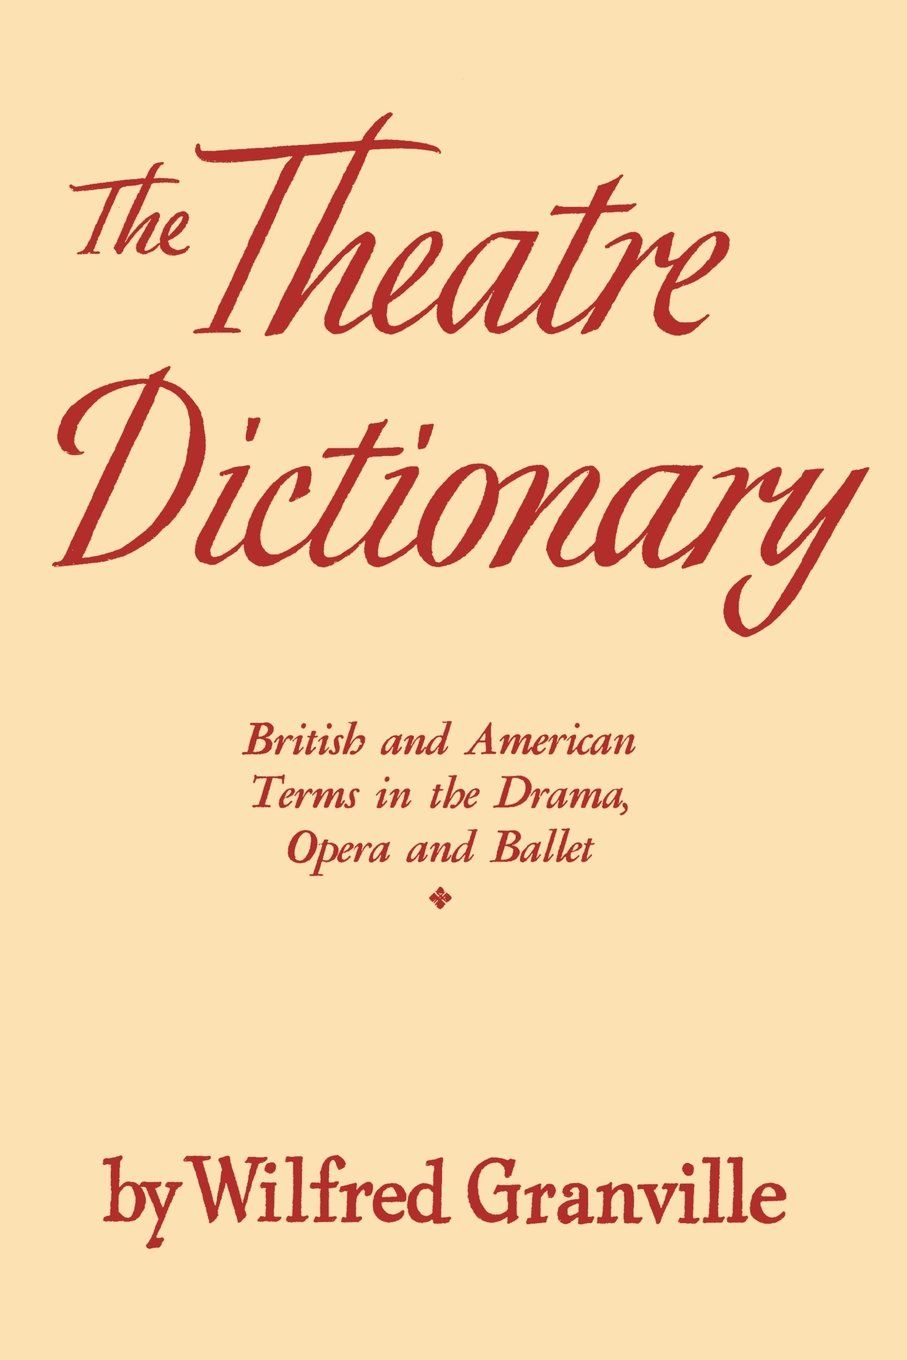 The Theatre Dictionary: British and American Terms in the Drama, Opera, and Ballet pdf